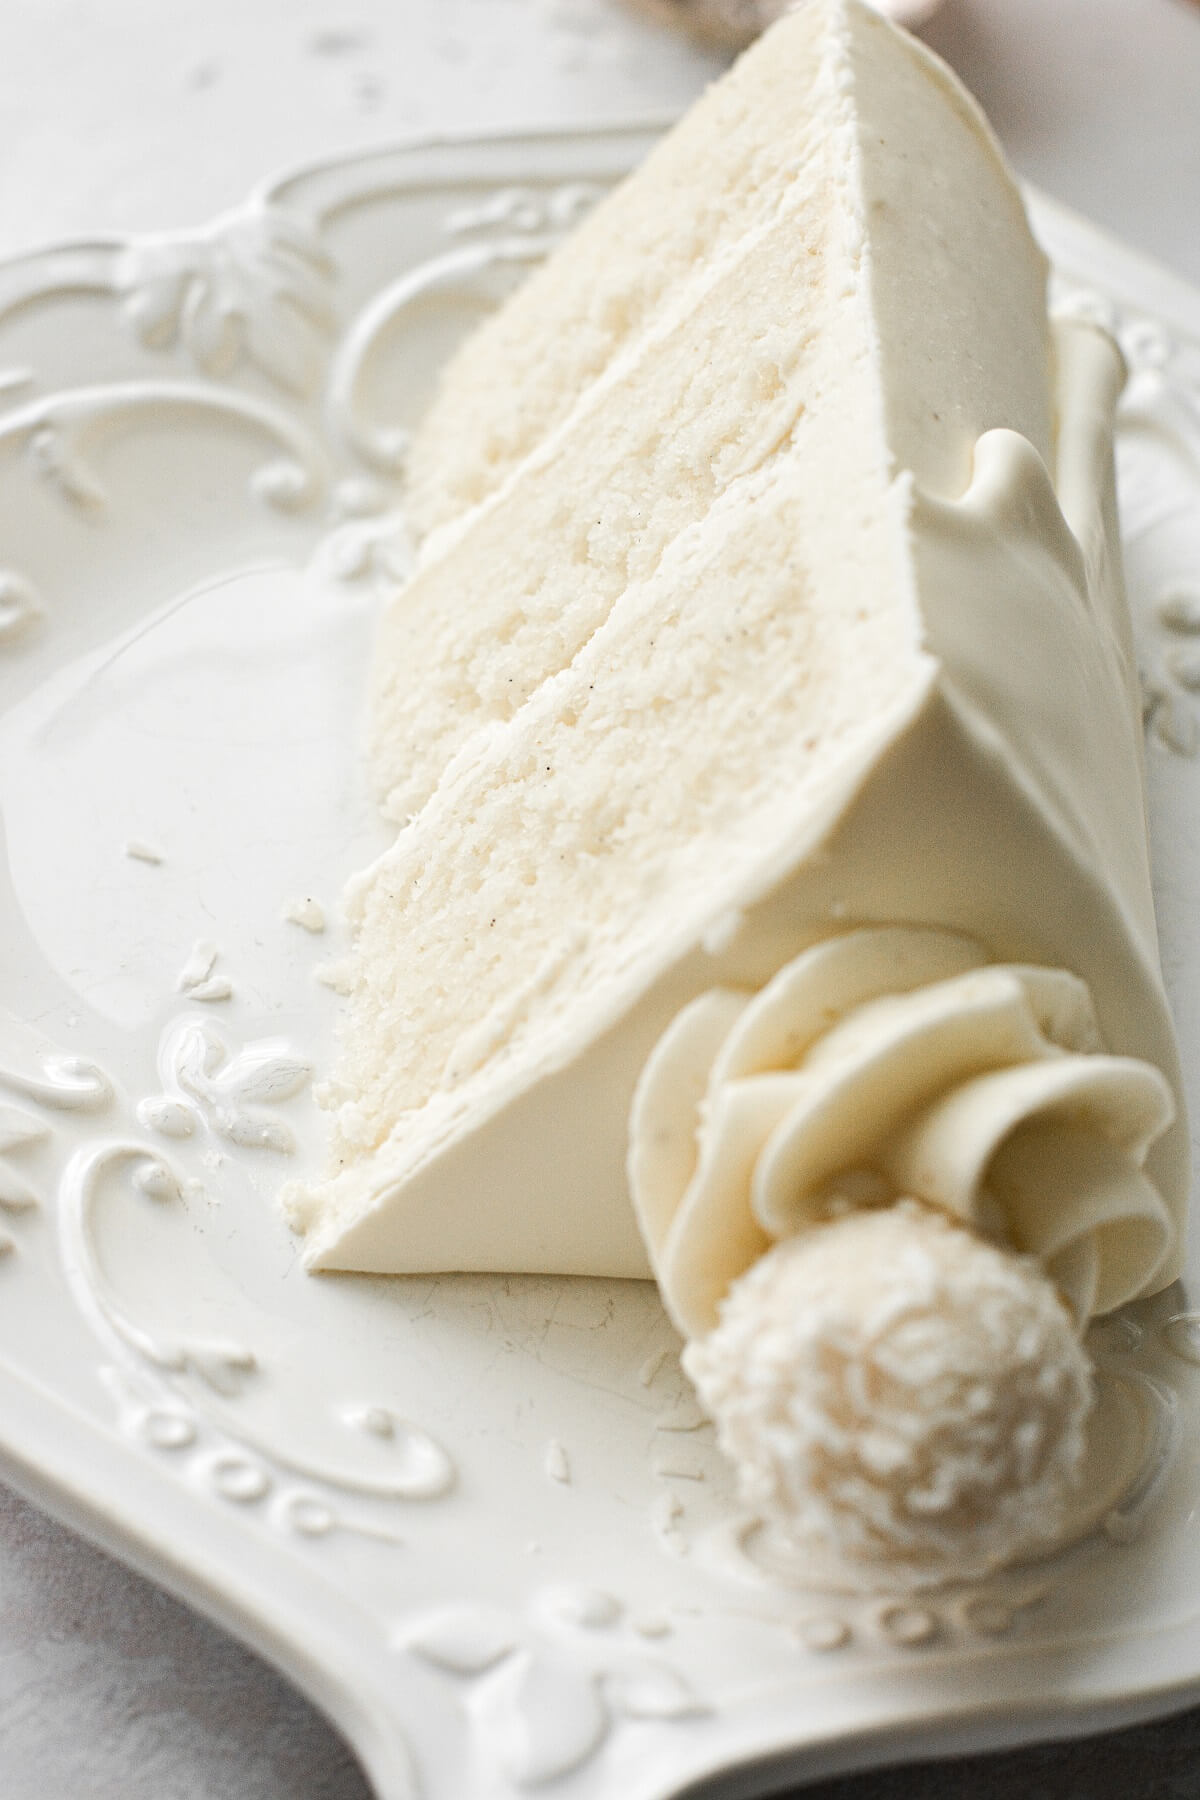 A slice of white chocolate cake topped with a white chocolate truffle.